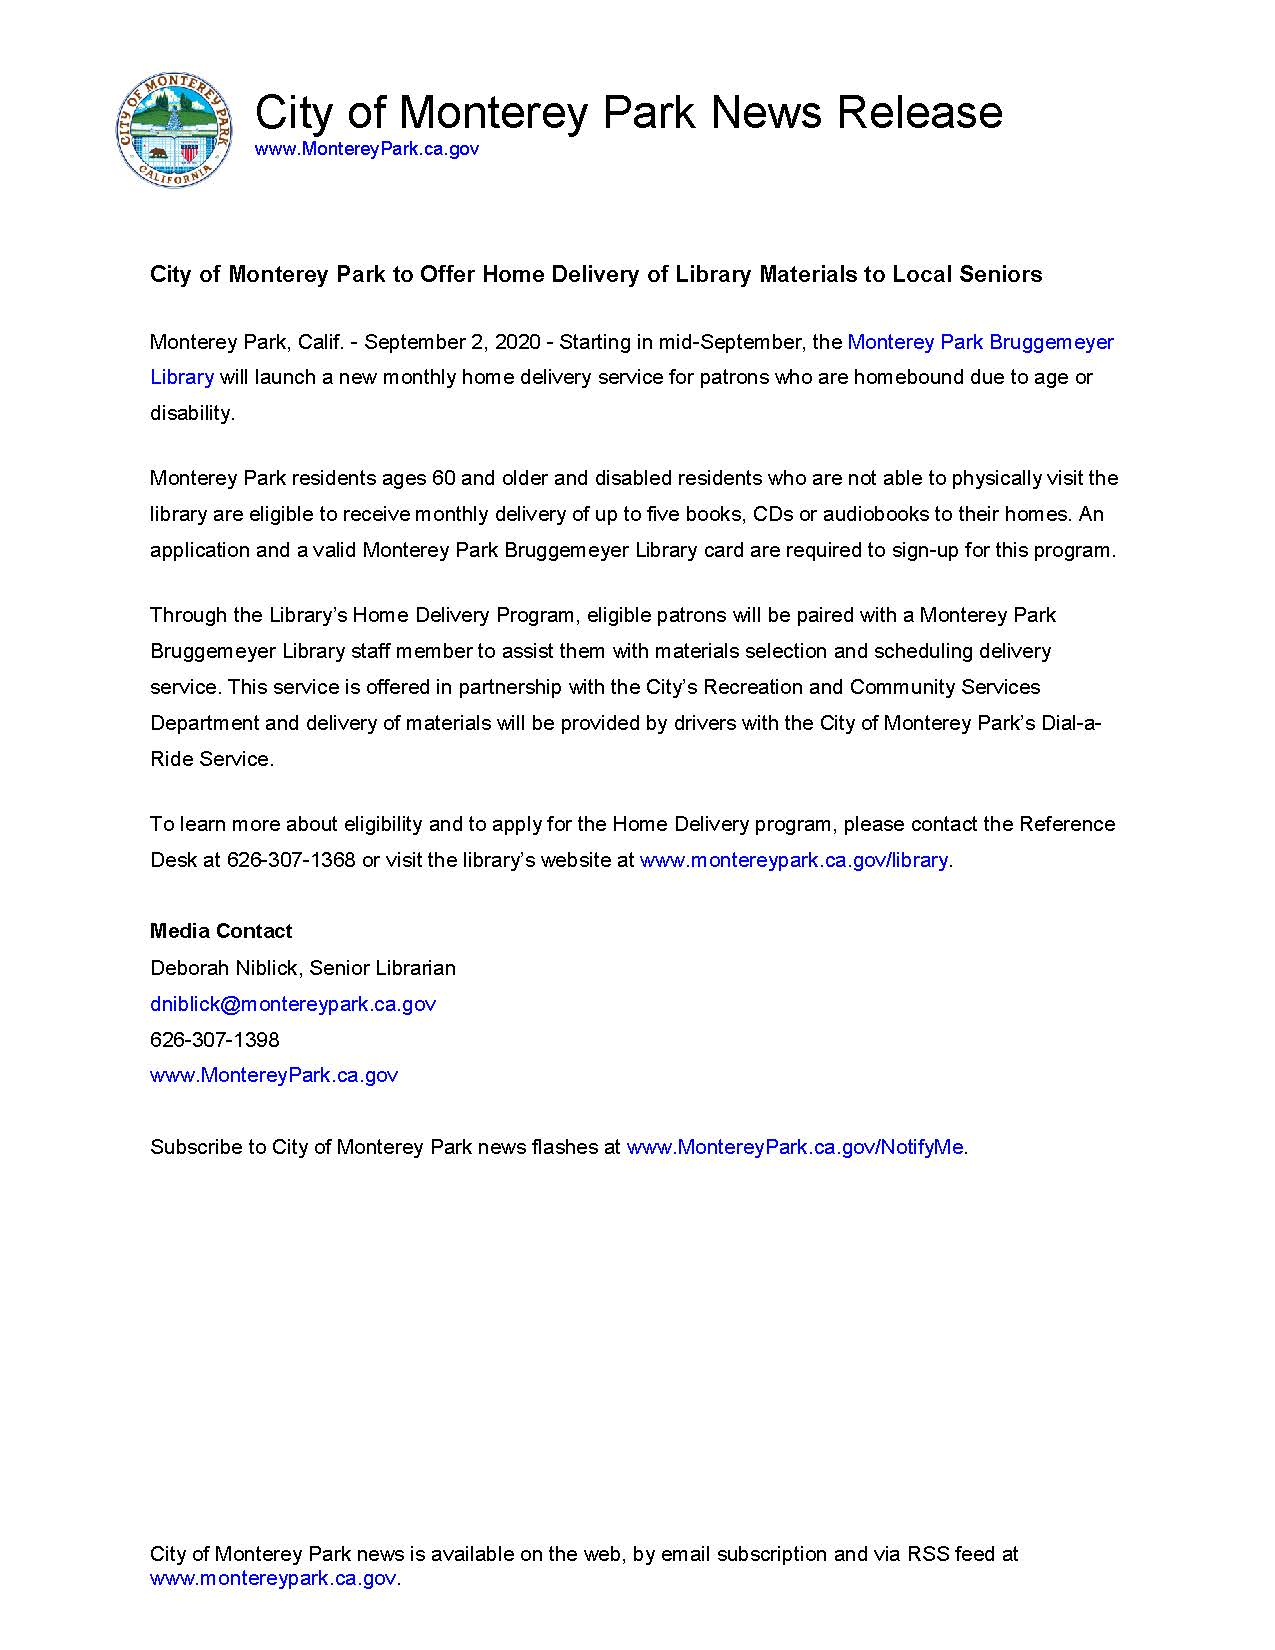 MPK News Release-City of Monterey Park to Offer Home Delivery of Library Materials to Local Seniors